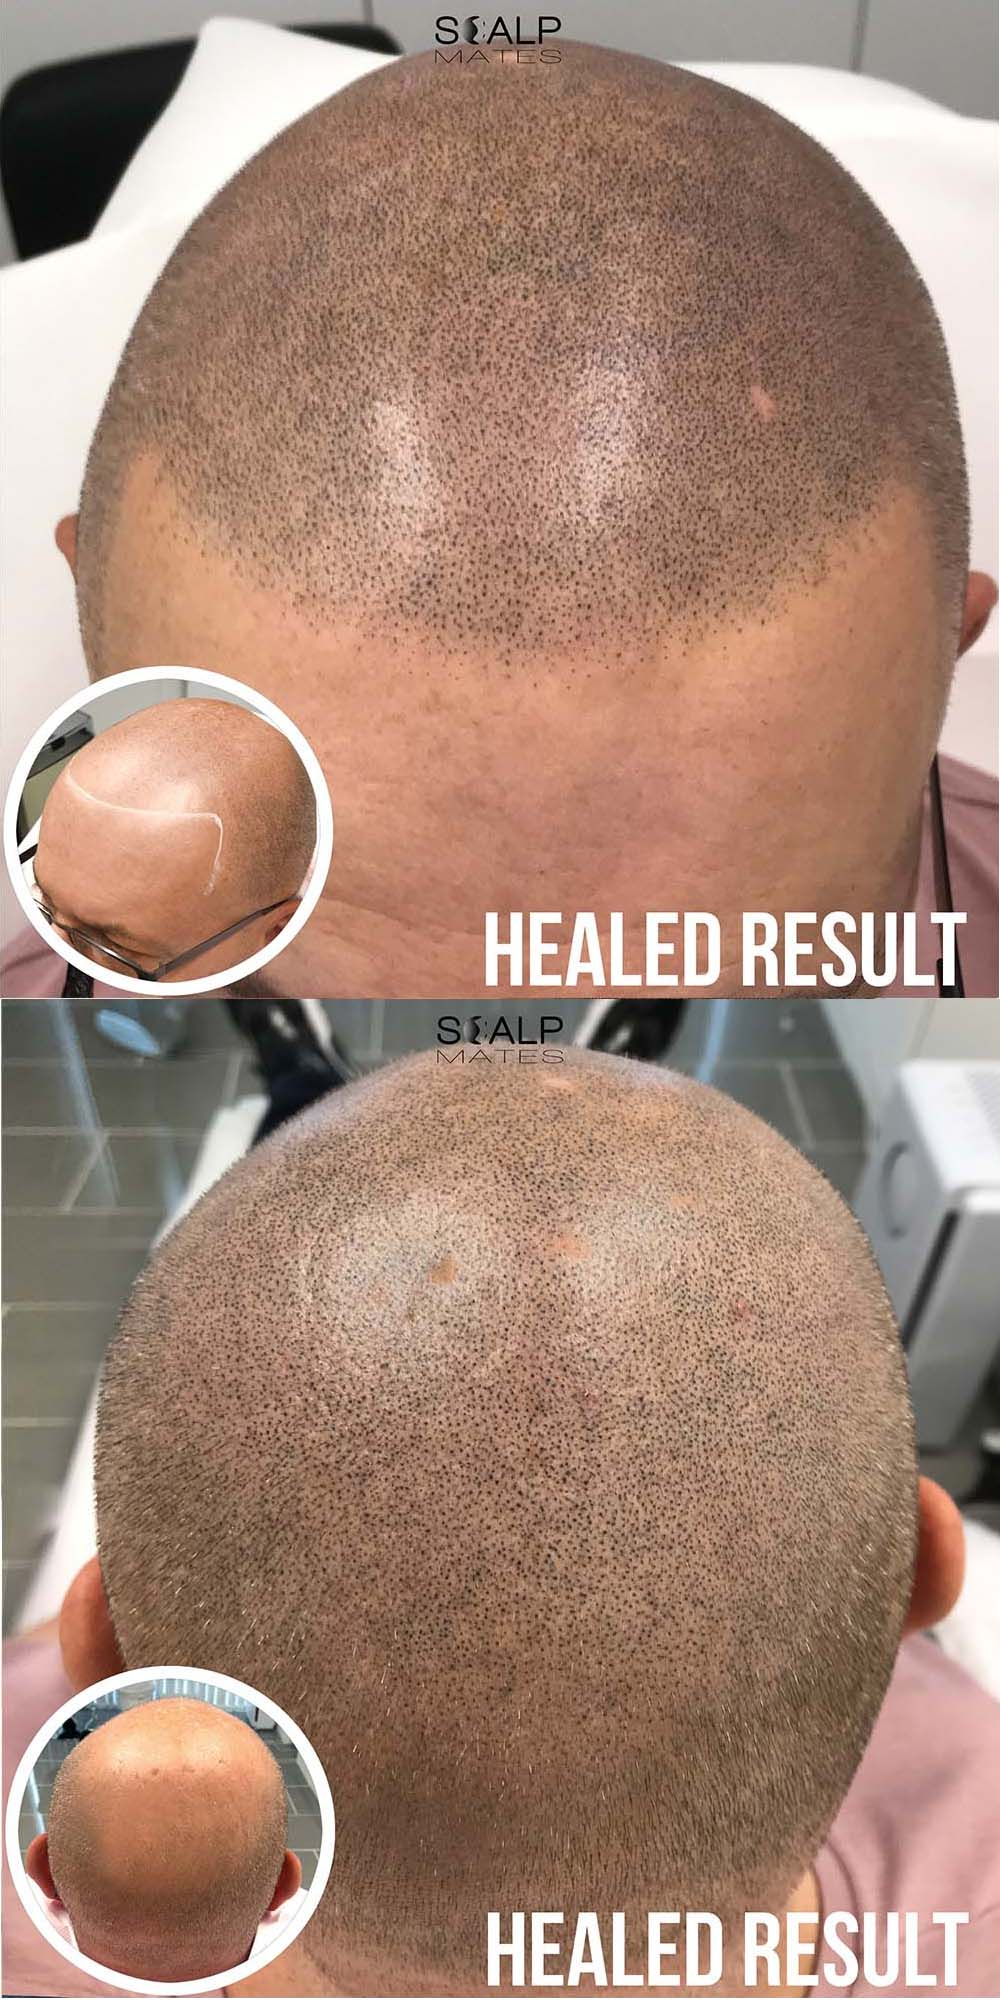 Hair tattoo on head   before and after Scap micropigmentation   SMP for male pattern baldness   bald head tattoo to create a full head of buzzed hair   Scalp Mates in Kings Heath, Birmingham, UK